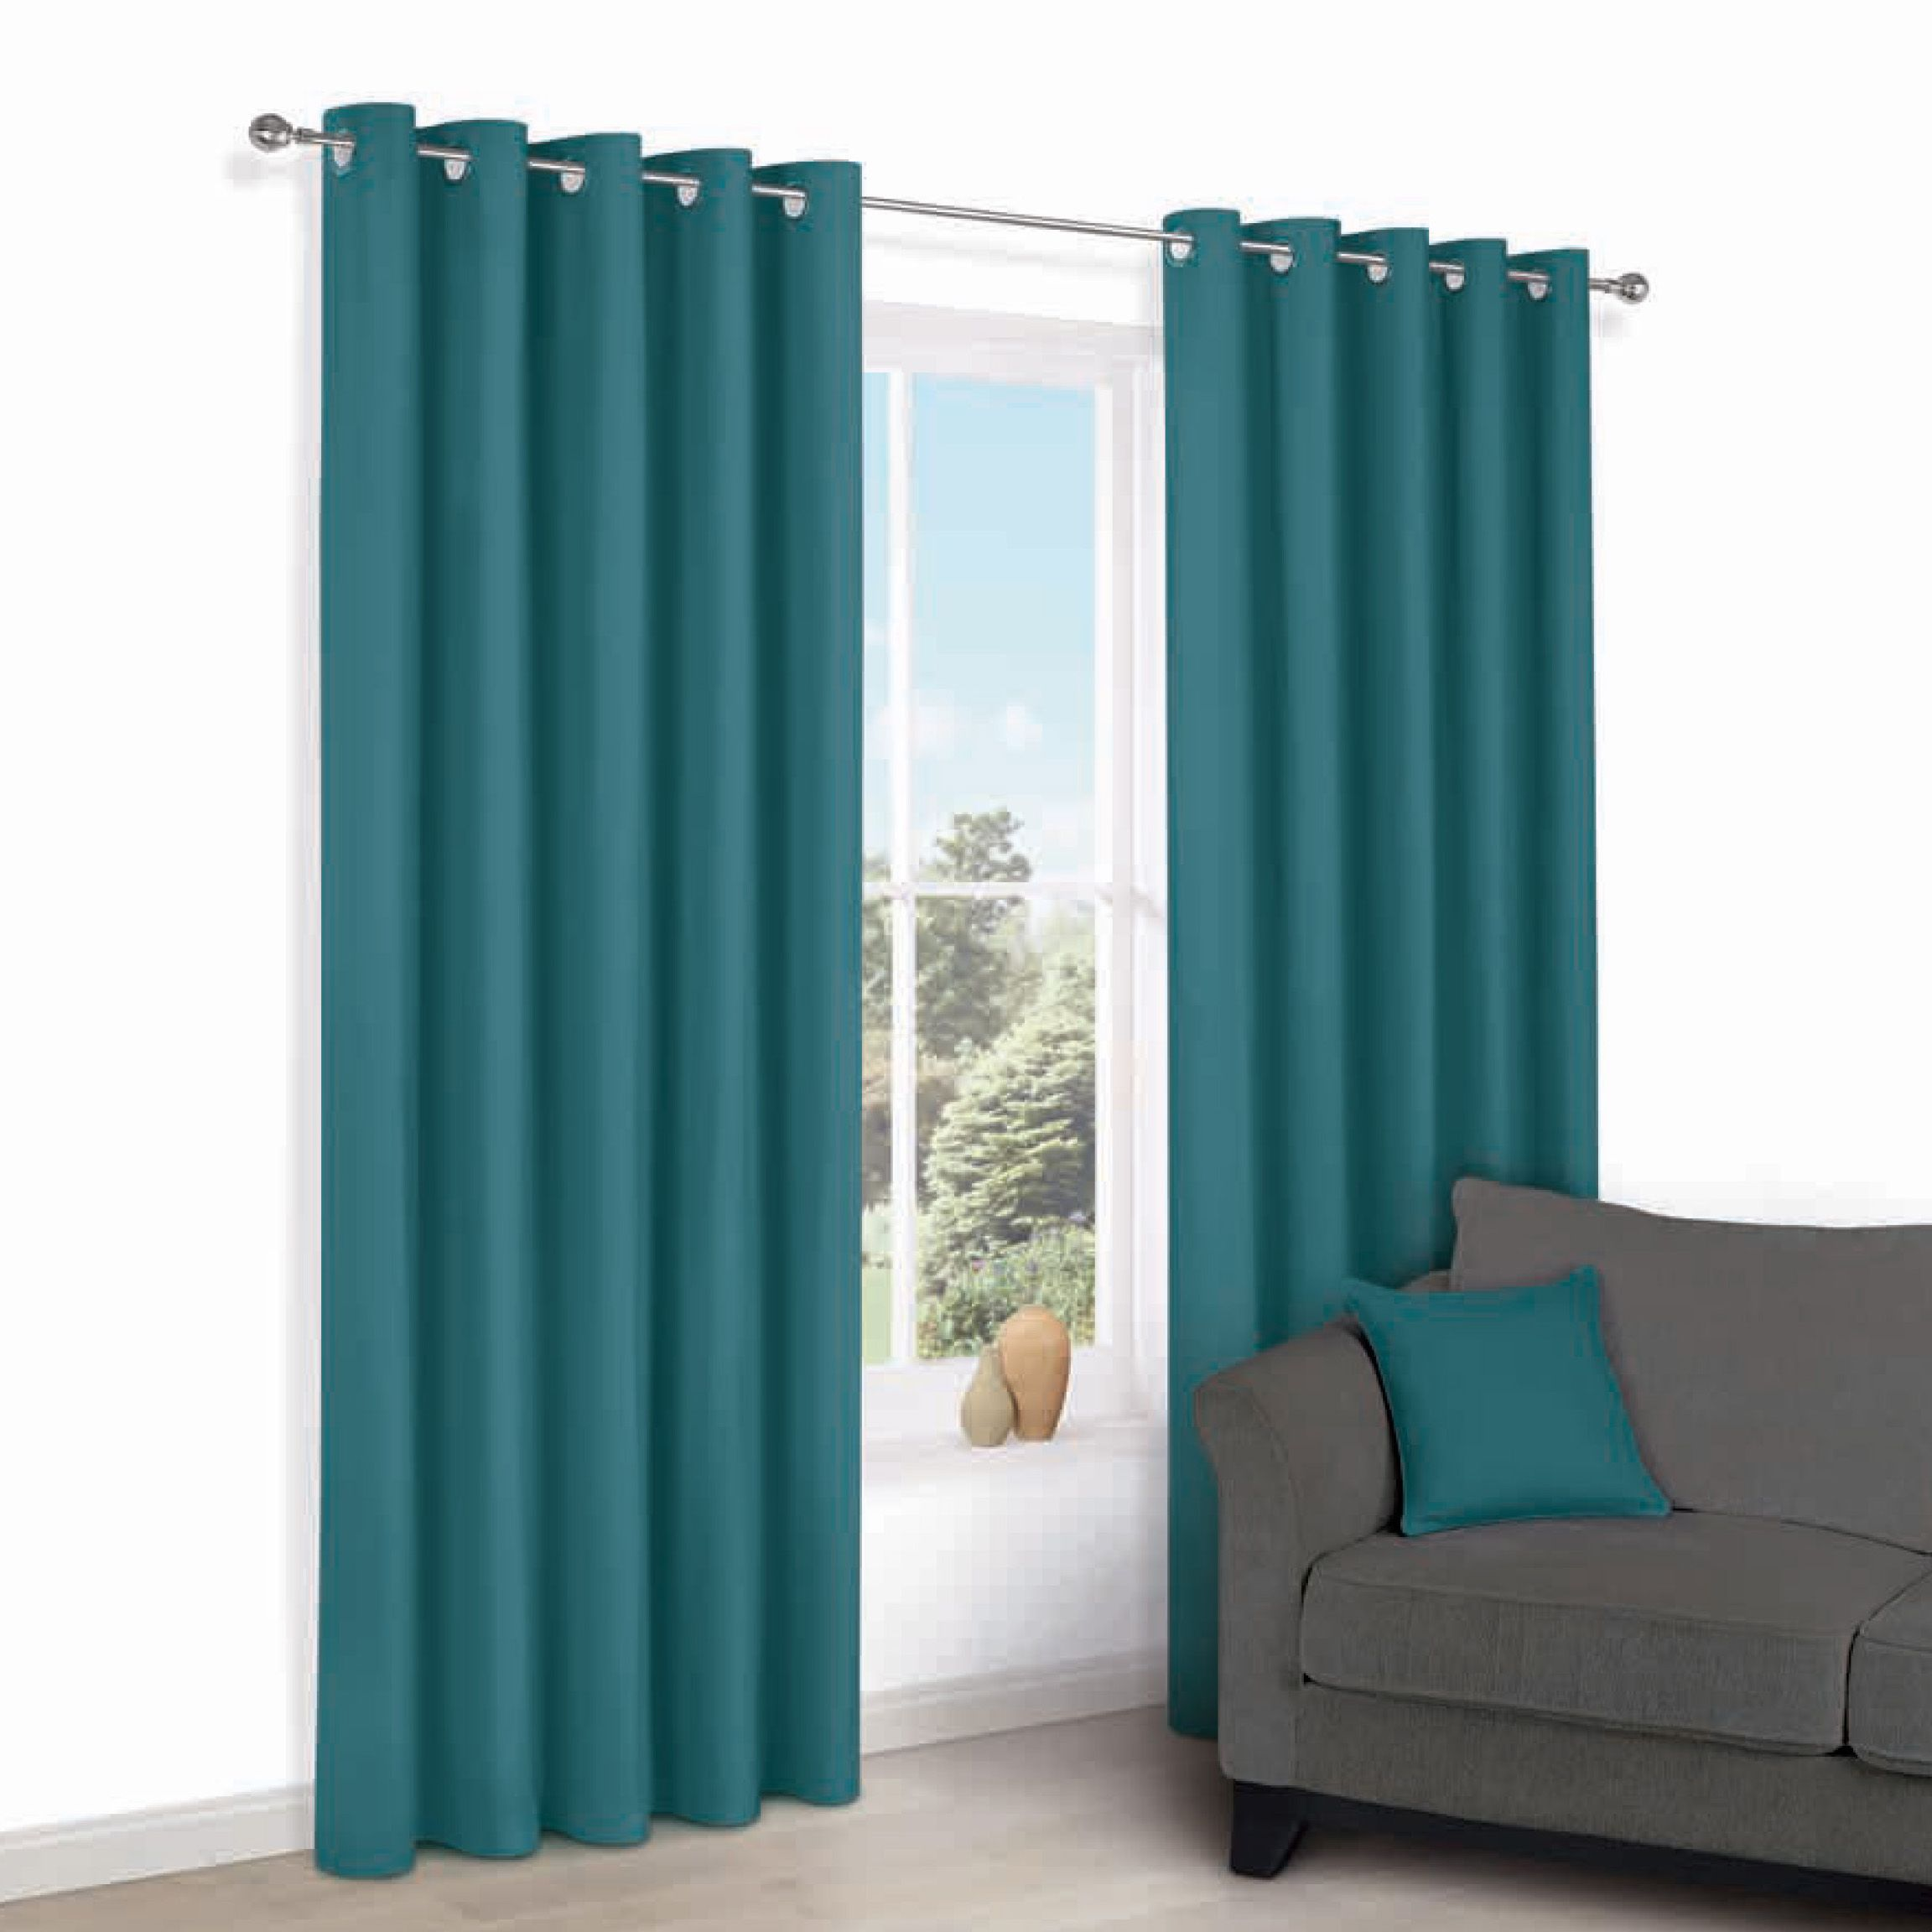 Zen Peacock Plain Eyelet Curtains (w)167cm (l)228cm